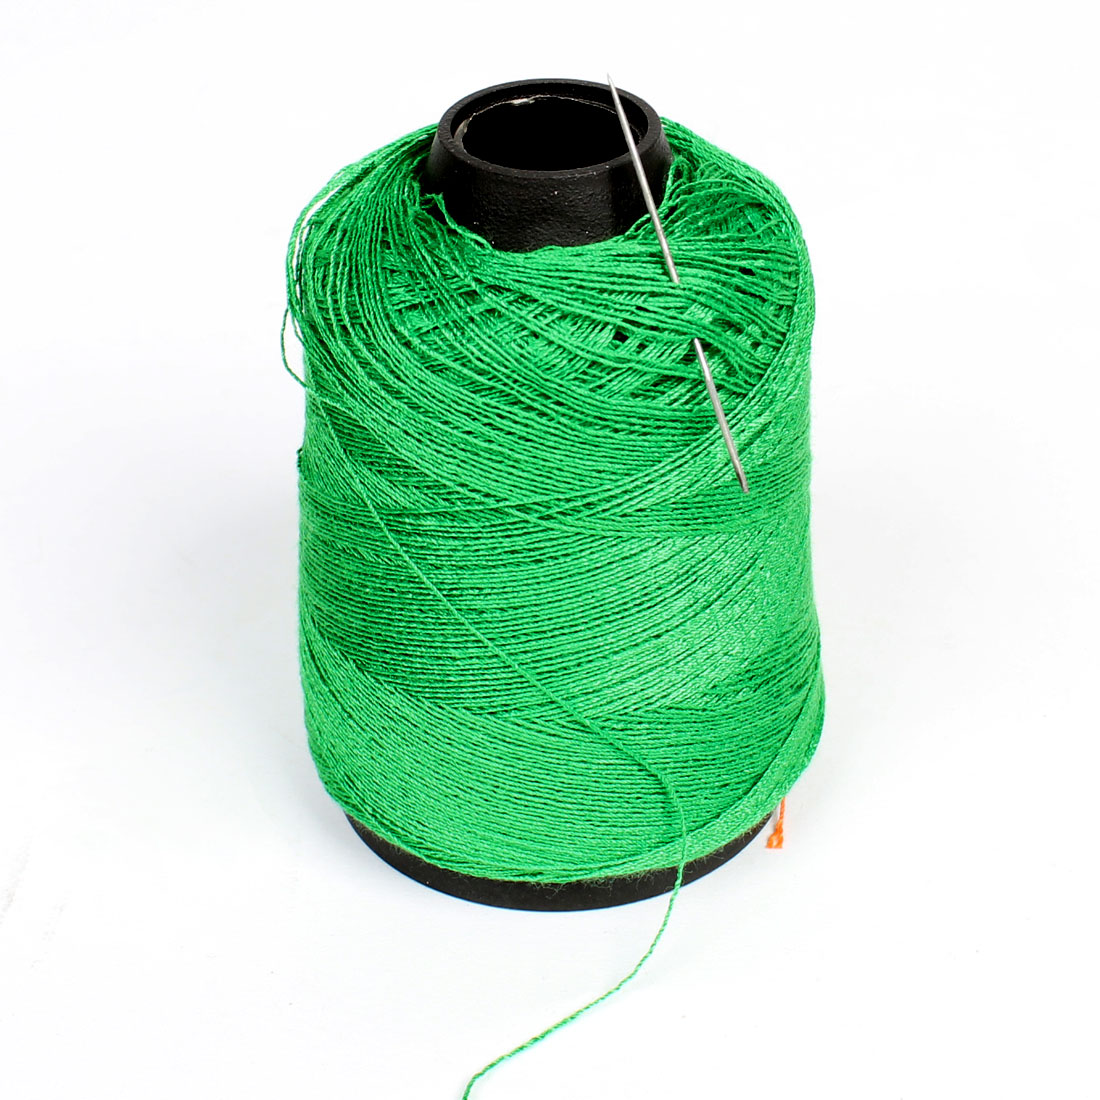 Factory Tailor Quilting Stitching Cotton Sewing Thread Spool Green w Needle